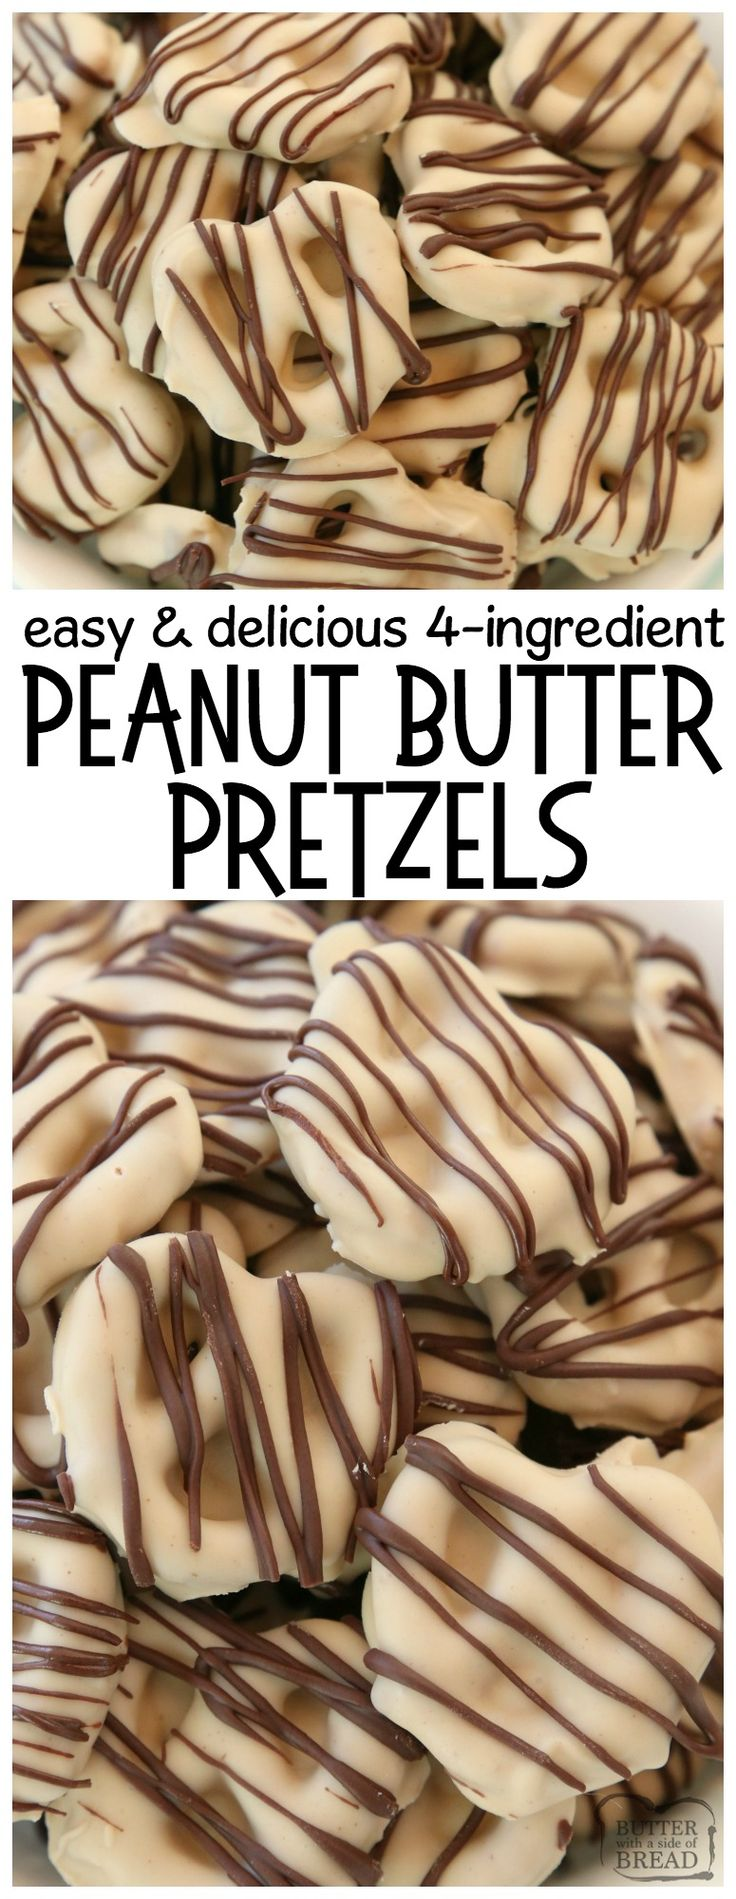 Peanut Butter Pretzels are made with 4 simple ingredients and they're completely amazing! Easy treats made with peanut butter, pretzels, and chocolate & perfect for anytime! Delicious peanut butter recipe for snack or dessert with few ingredients and minimal work! SO simple!